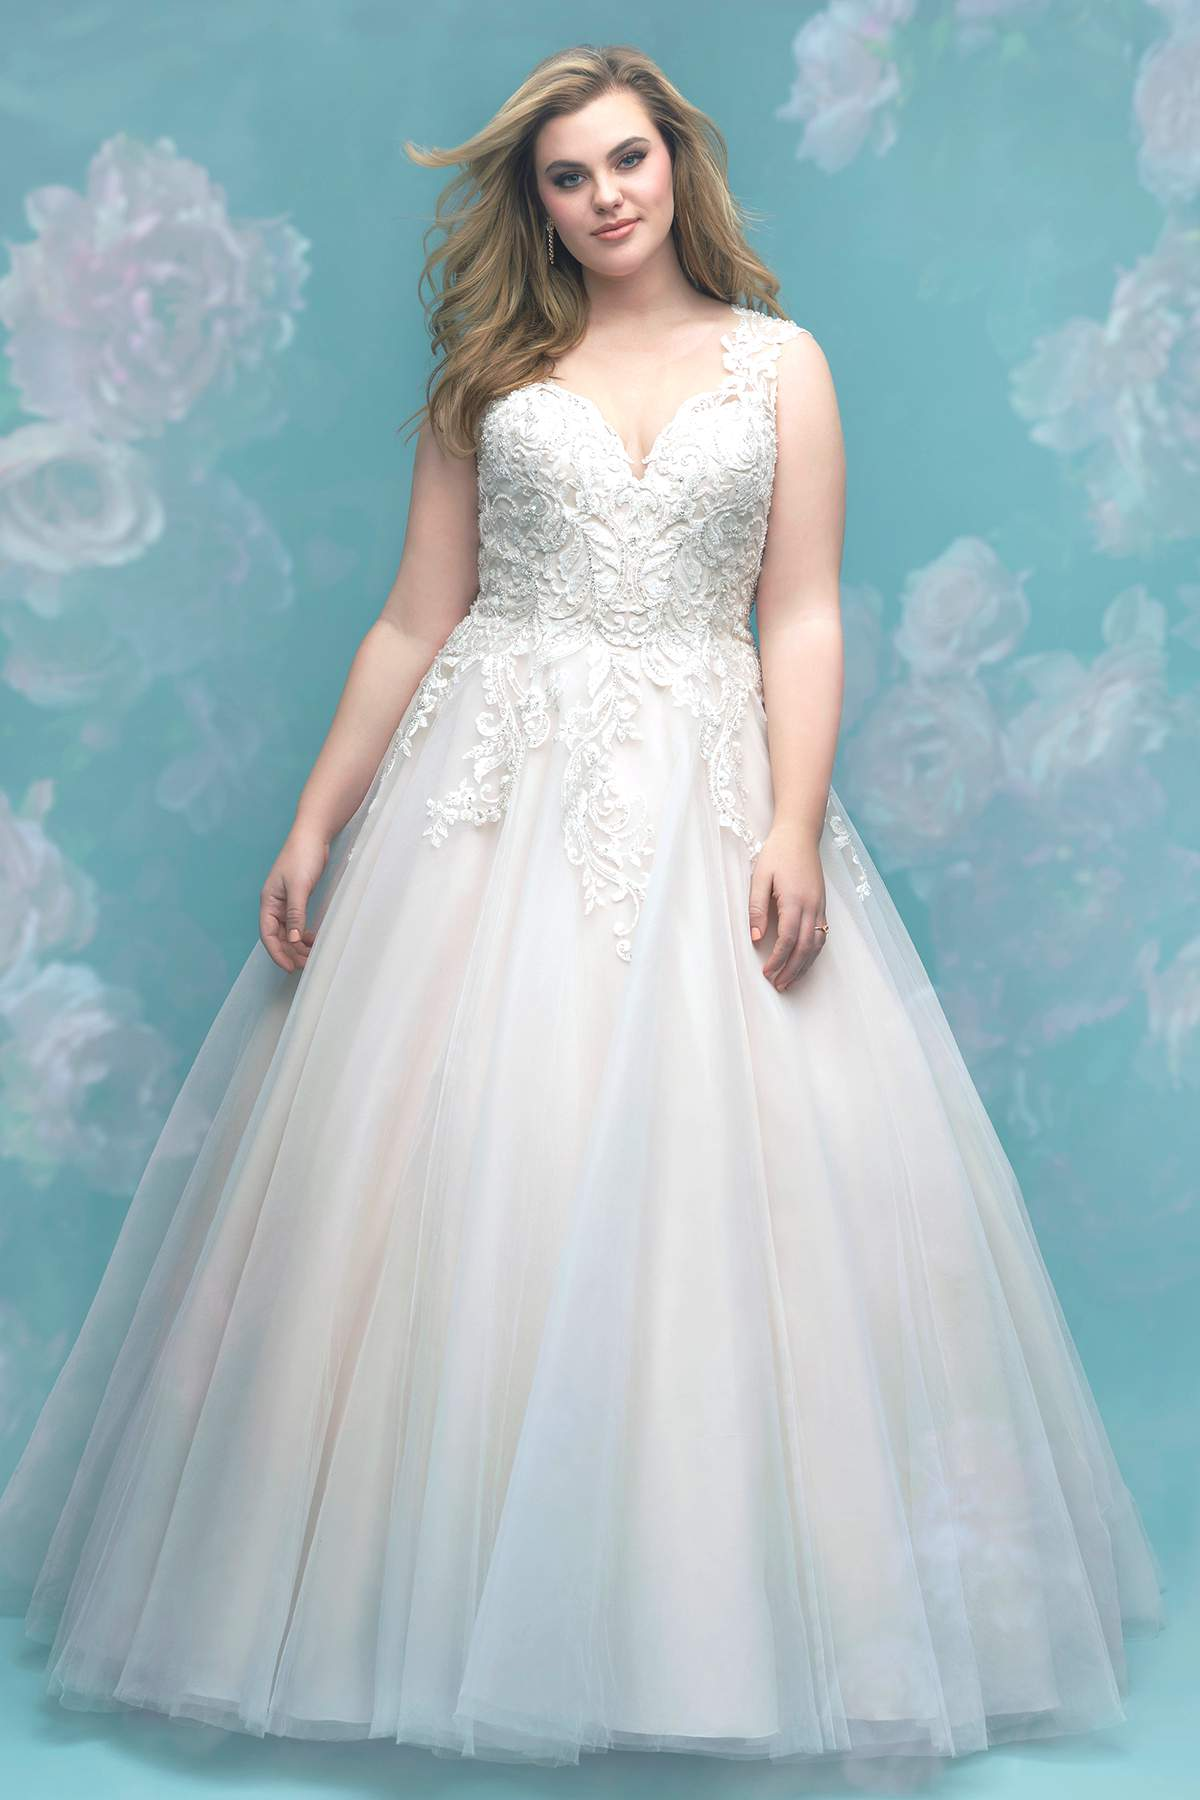 Style W401 by Allure Women - Find Your Dream Dress